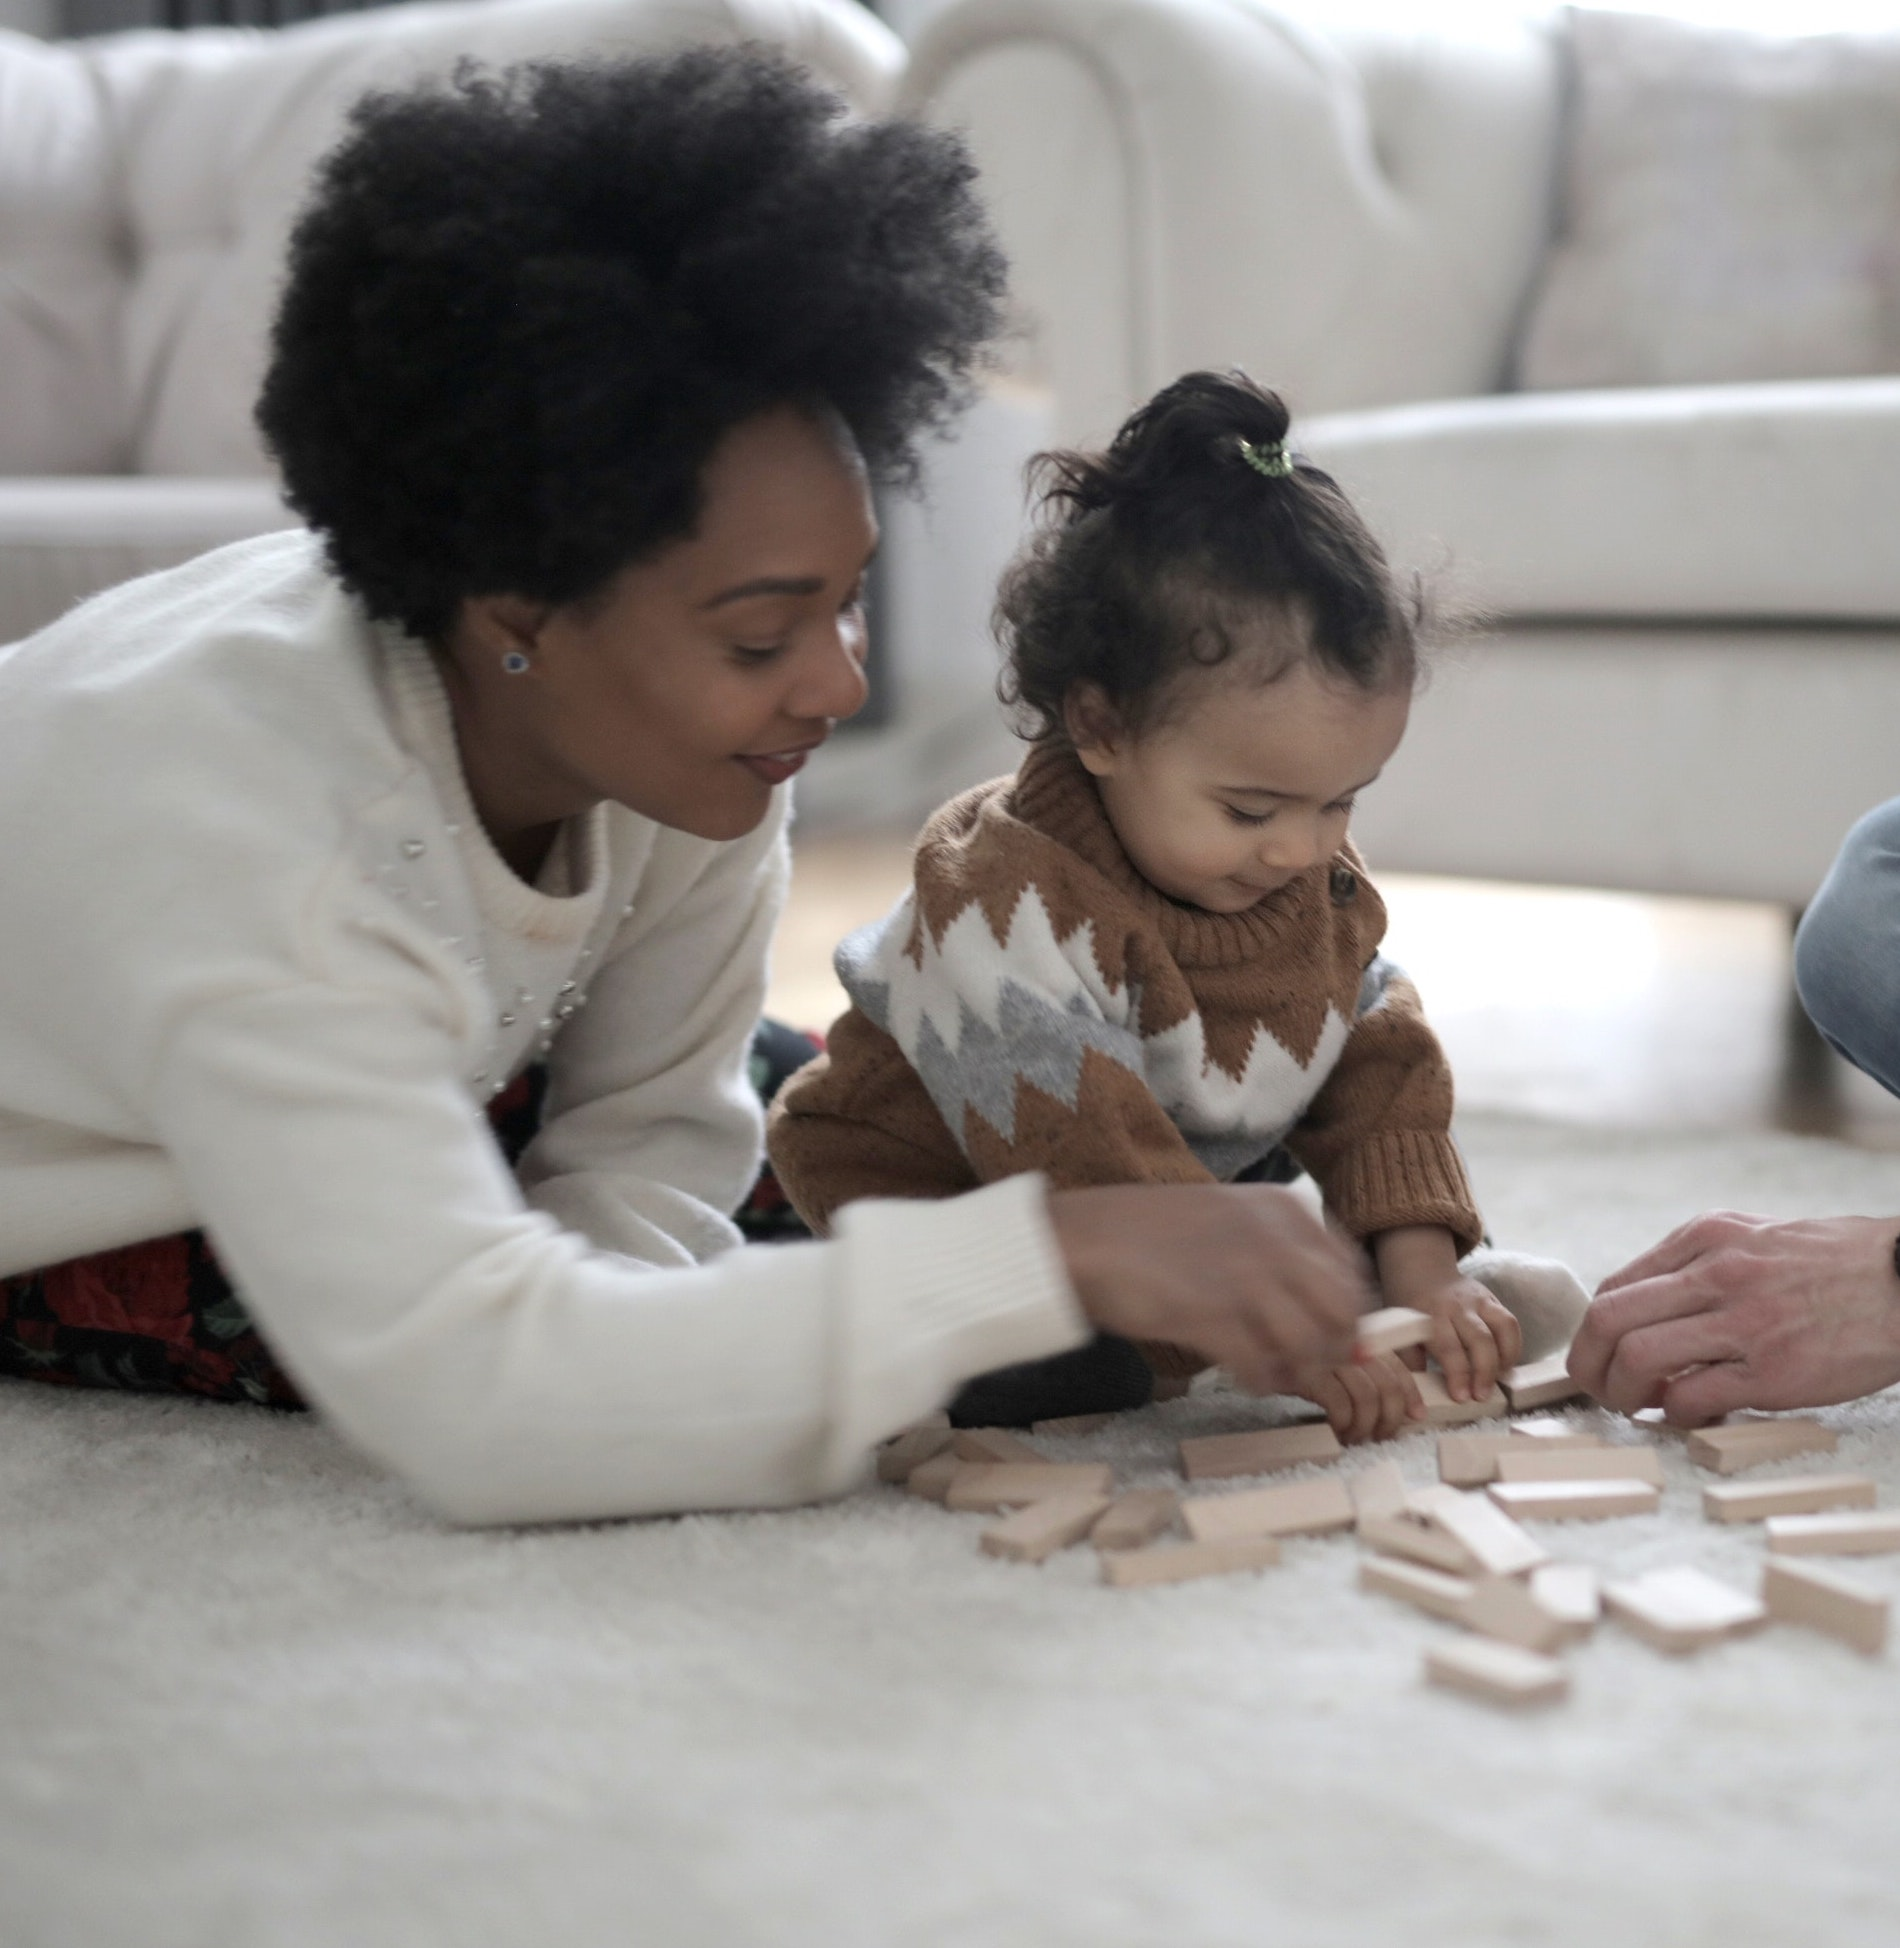 https://www.pexels.com/photo/photo-of-man-and-woman-playing-with-their-child-3819567/